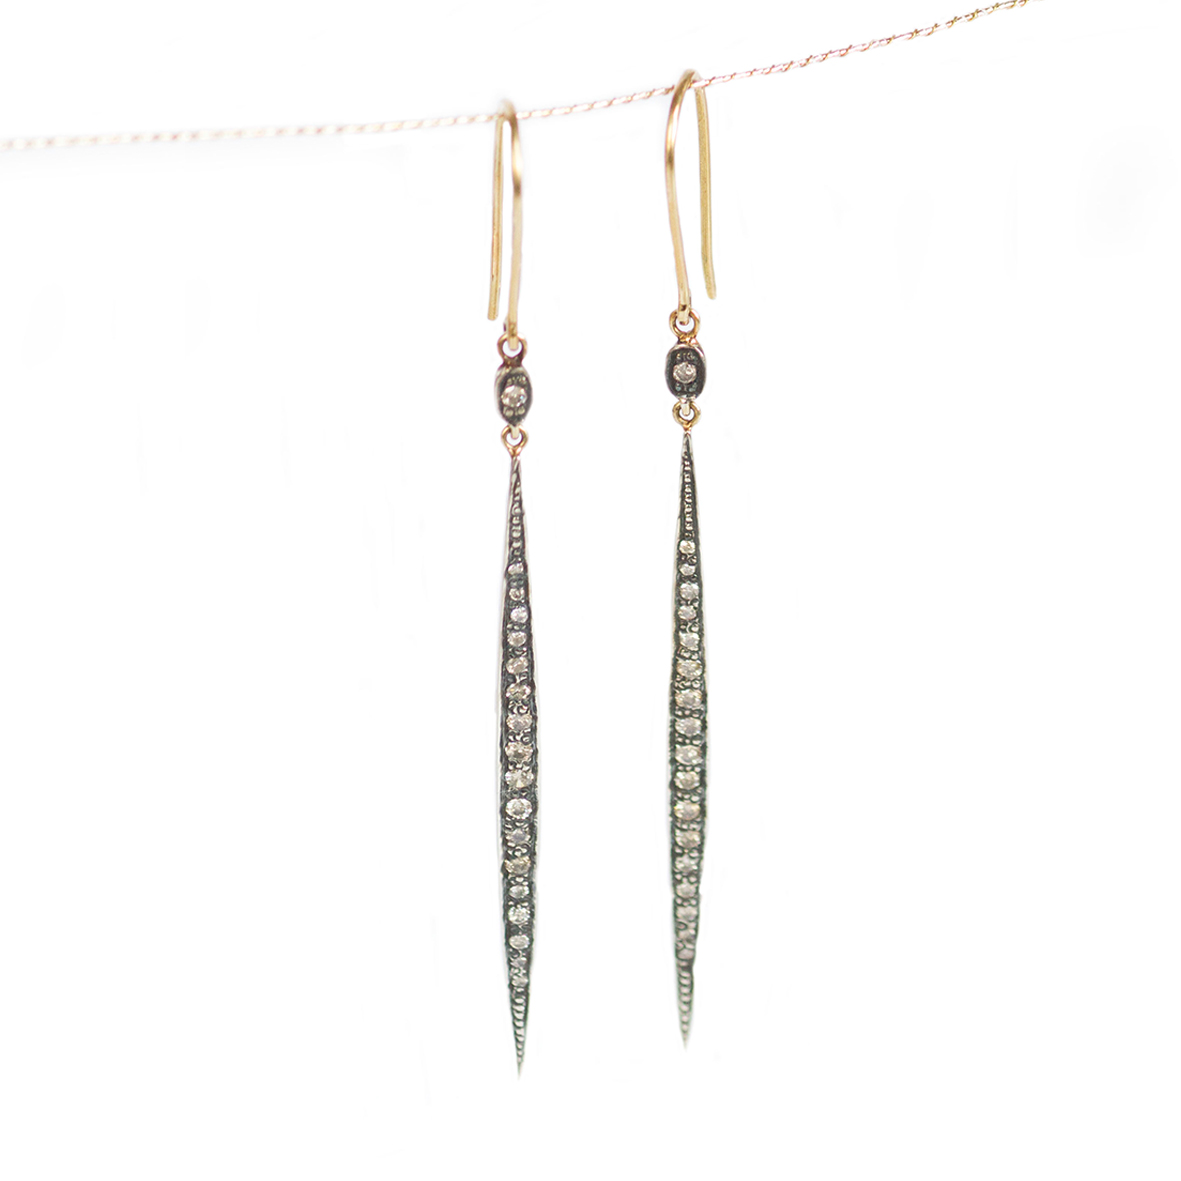 Leaf diamond drop earrings0803